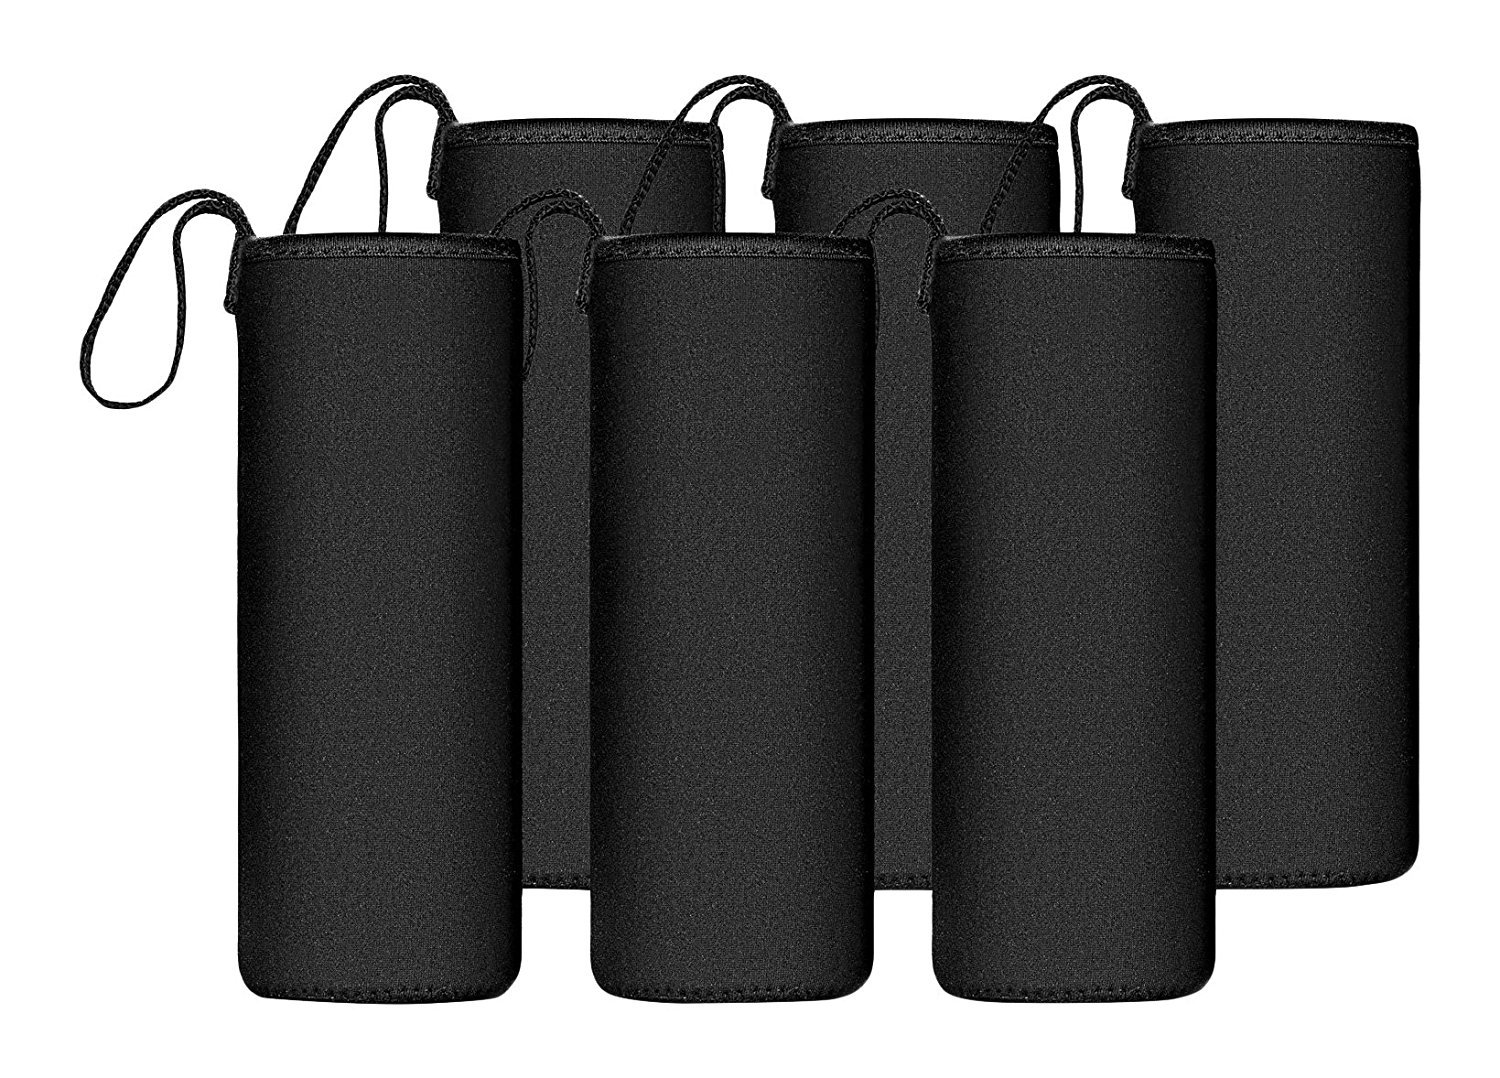 Chef's Star Glass Water Bottle 6 Pack 18oz Bottles for Beverages and Juicer Use Stainless Steel Leak Proof Caps with Carrying Loop - Including 6 Black Nylon Protection Sleeve by Chef's Star (Image #5)